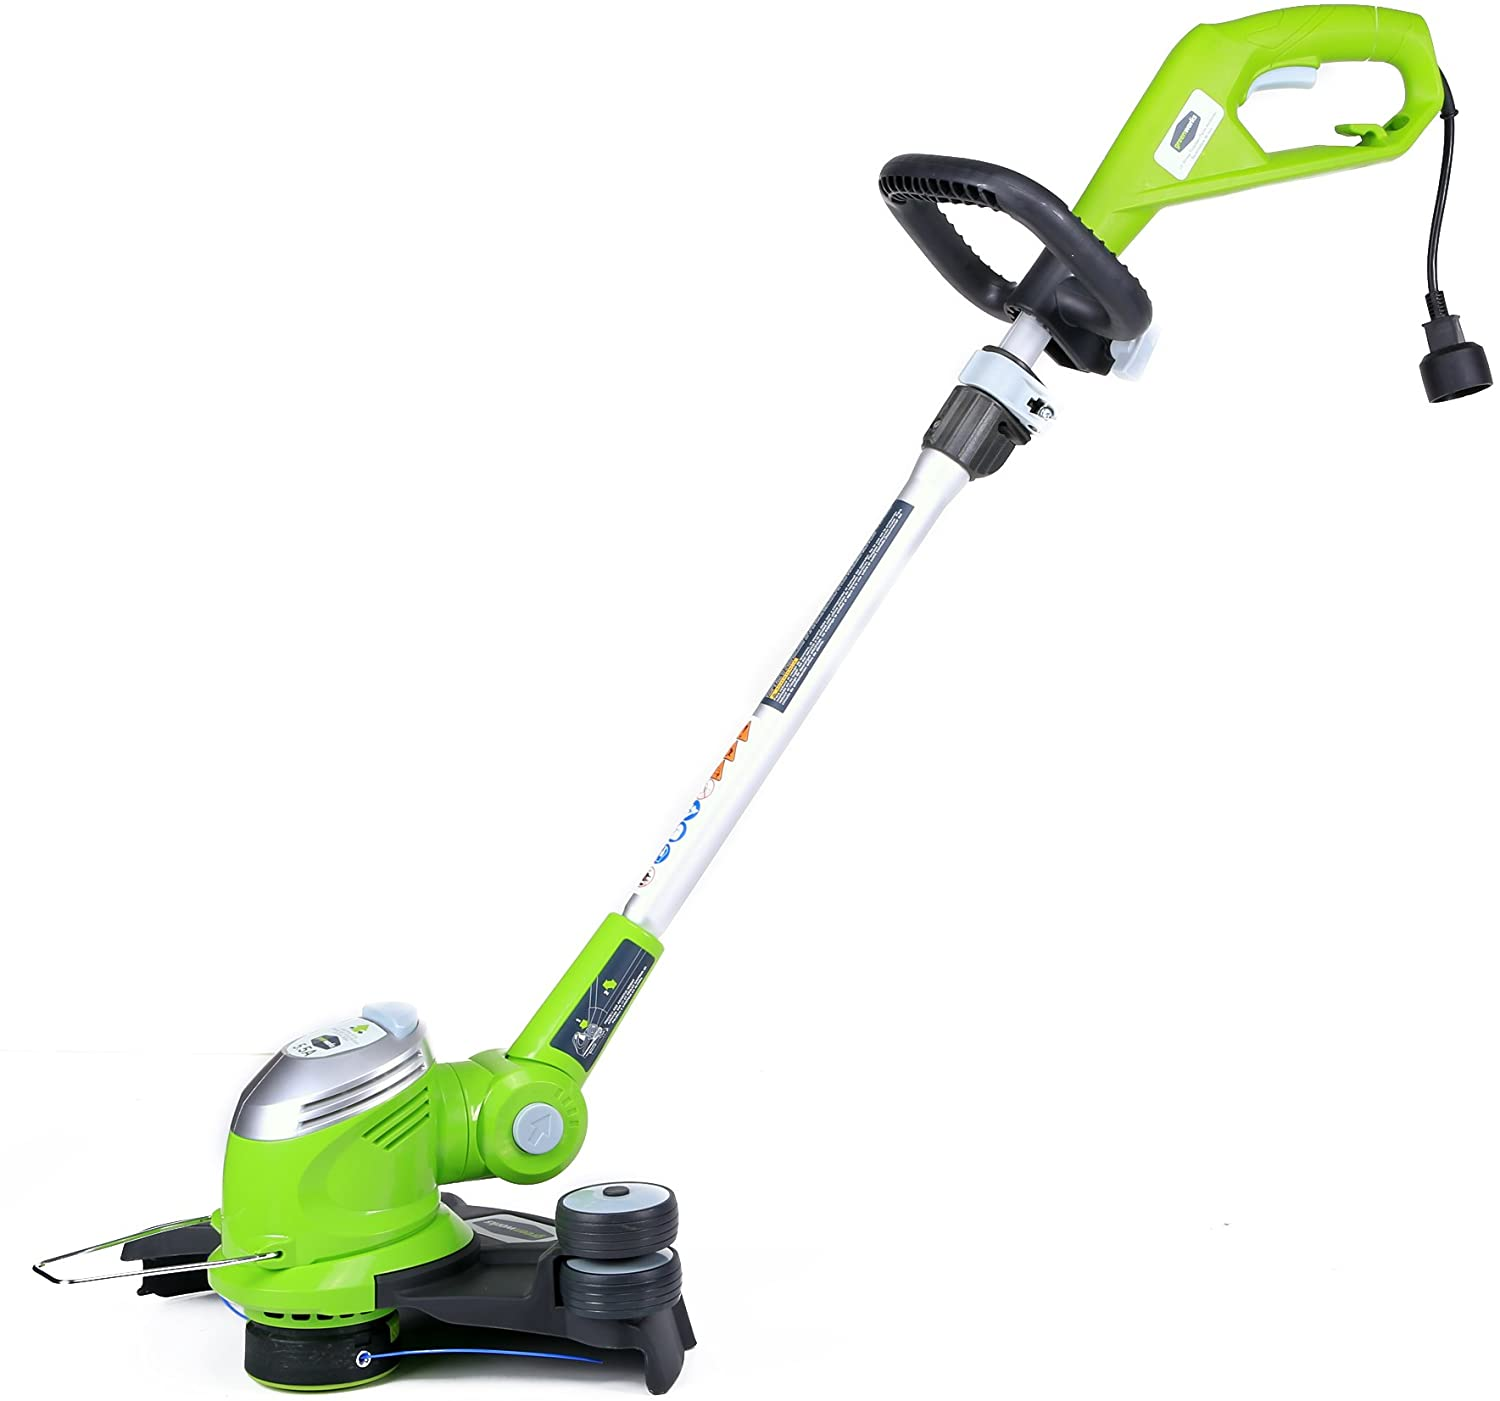 Greenworks 15-Inch 5.5 Amp Electric String Trimmer